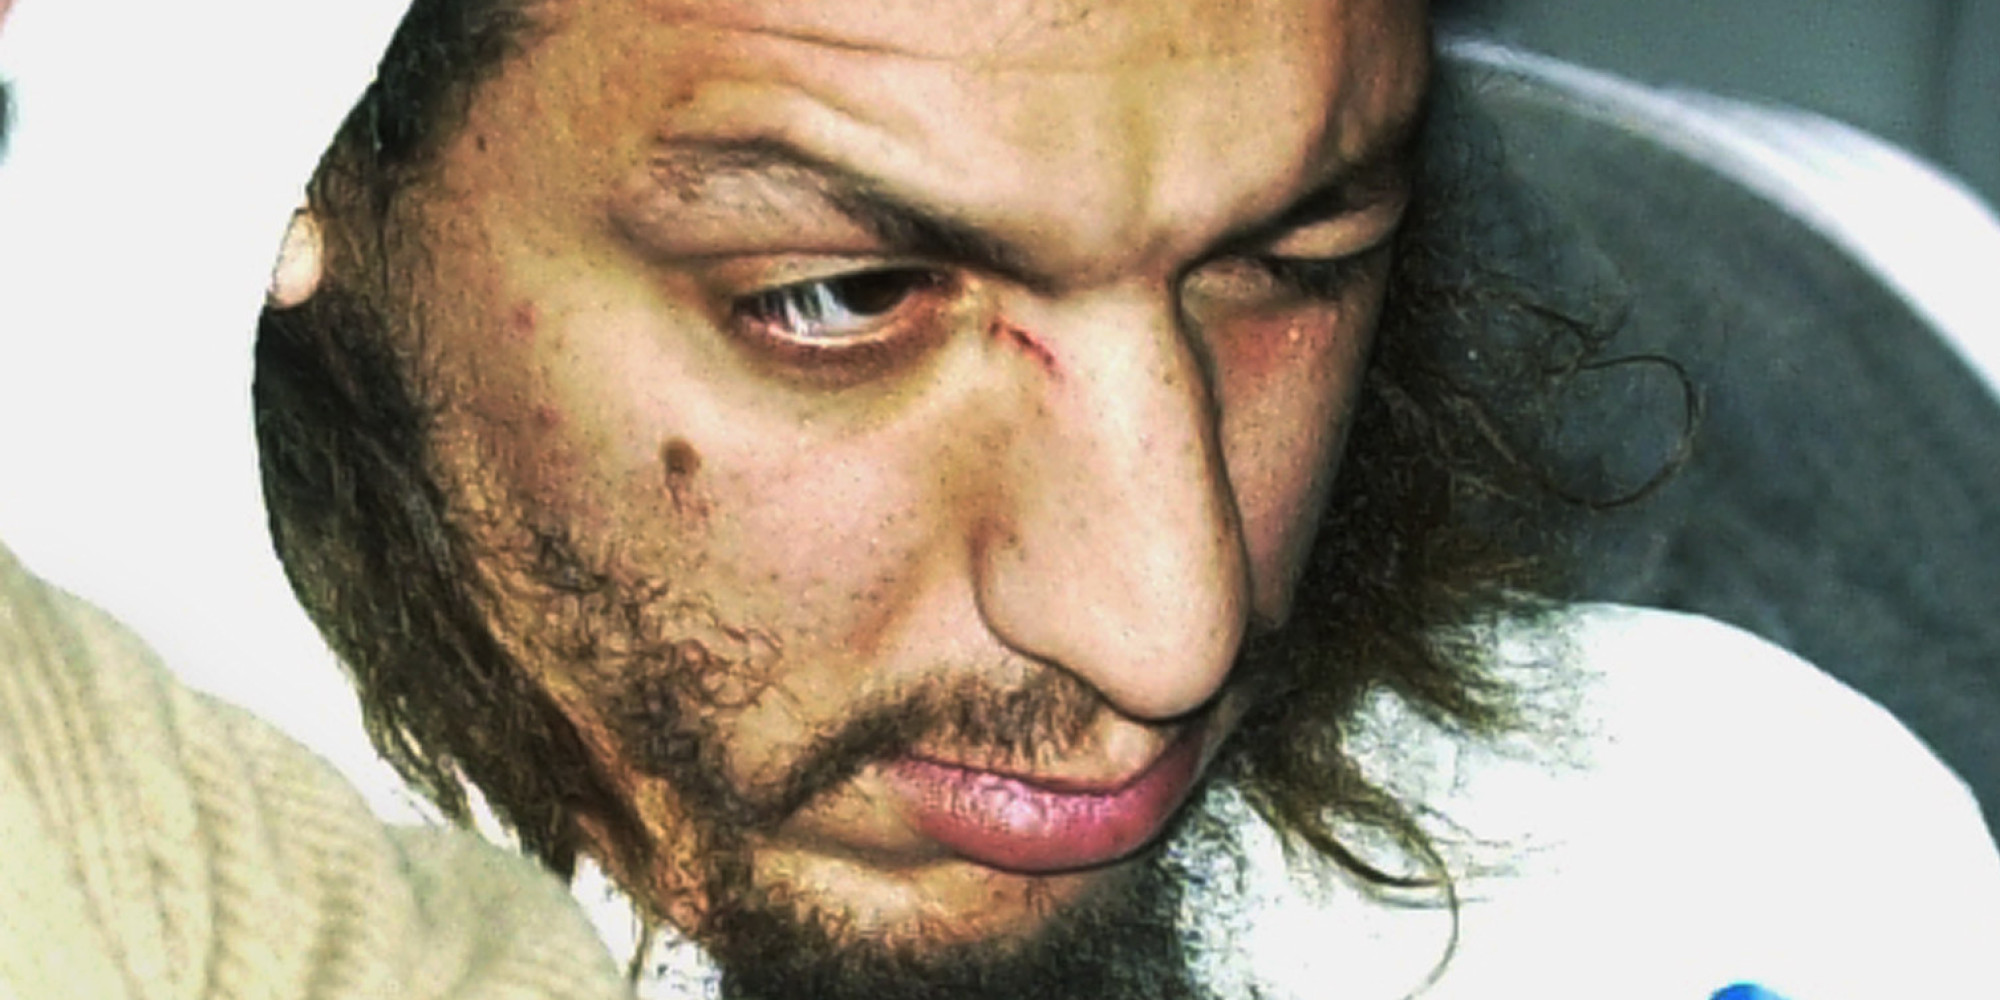 Shoe bomber Richard Reid shows no remorse after a decade in prison